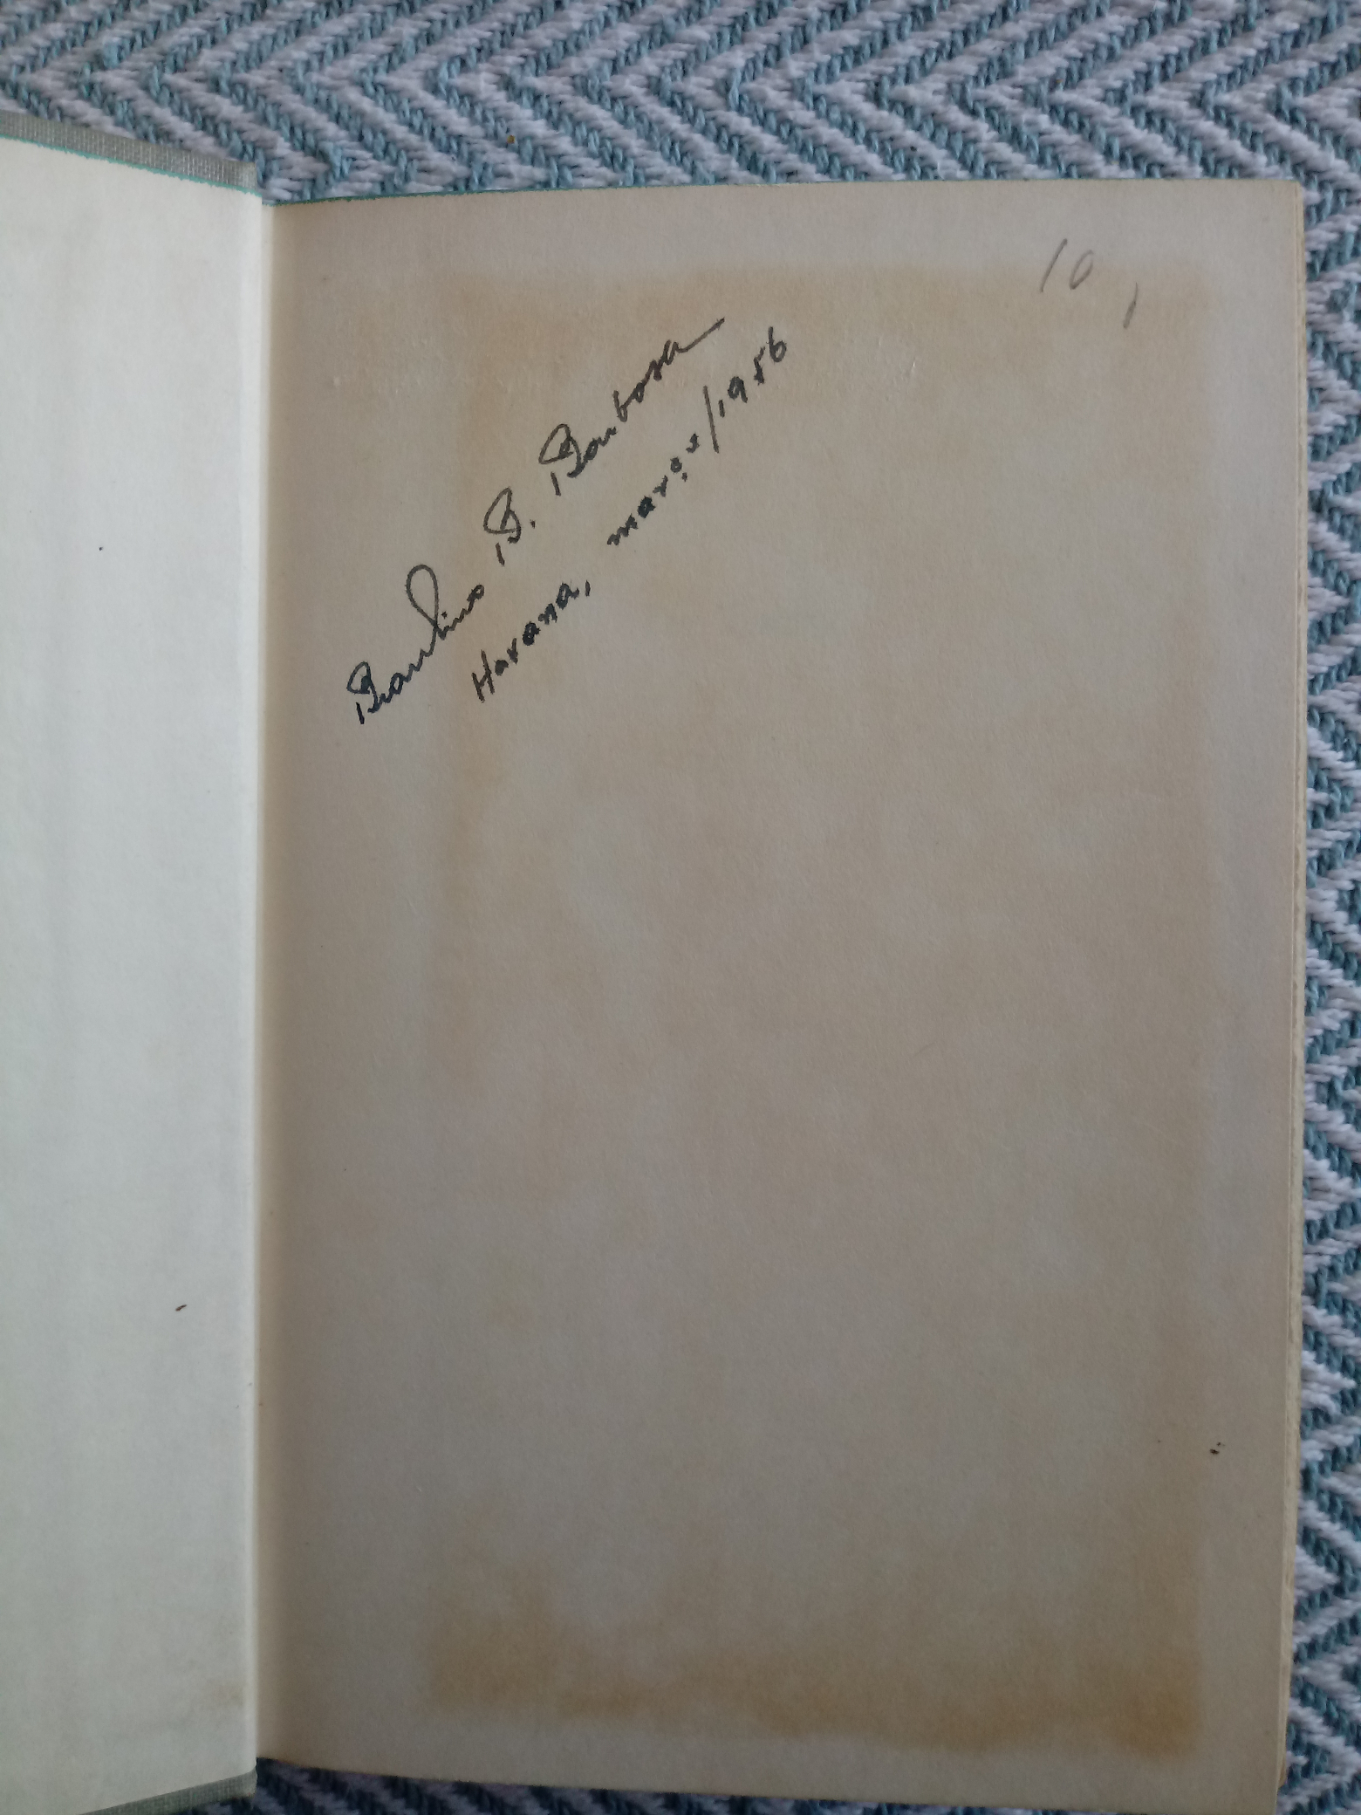 2 x The Tontine Volumes 1&2 by Thomas B. Costain hardback books 465 and 930 pages with inscription - Image 7 of 8